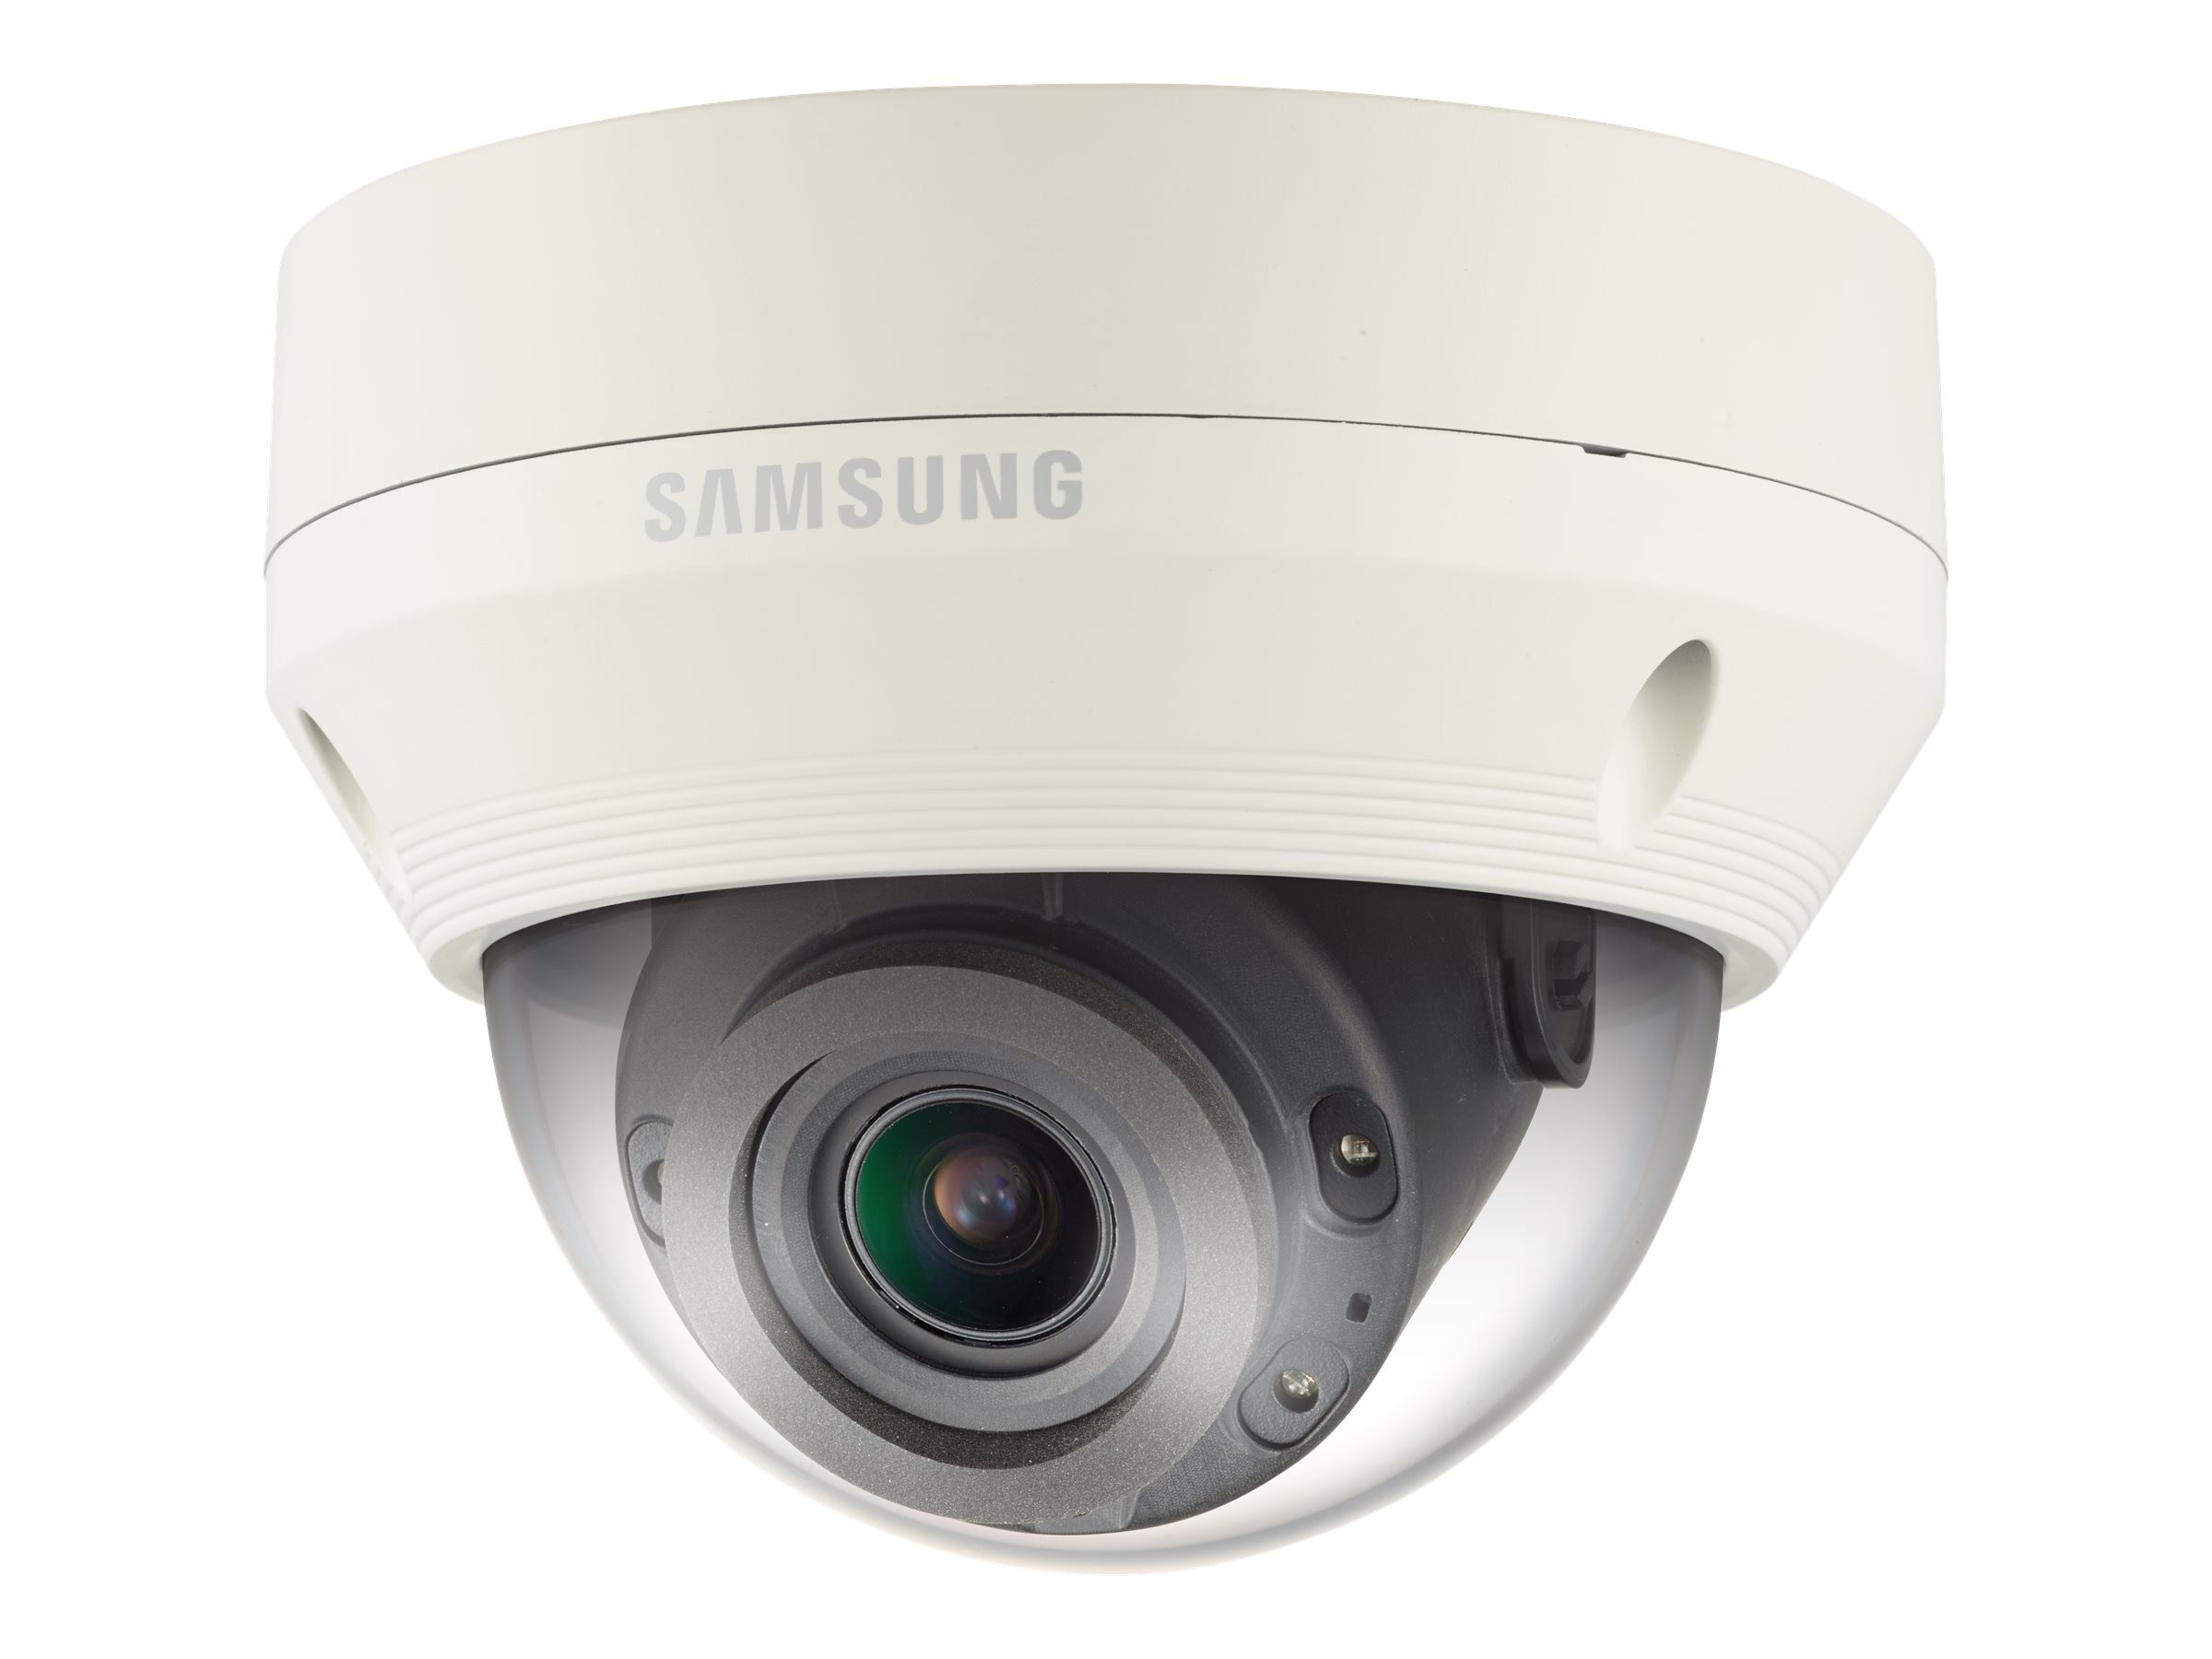 Samsung 2MP Vandal-Resistant Full HD Network IR Dome Camera with 2.8-12mm Lens, QNV-6070R